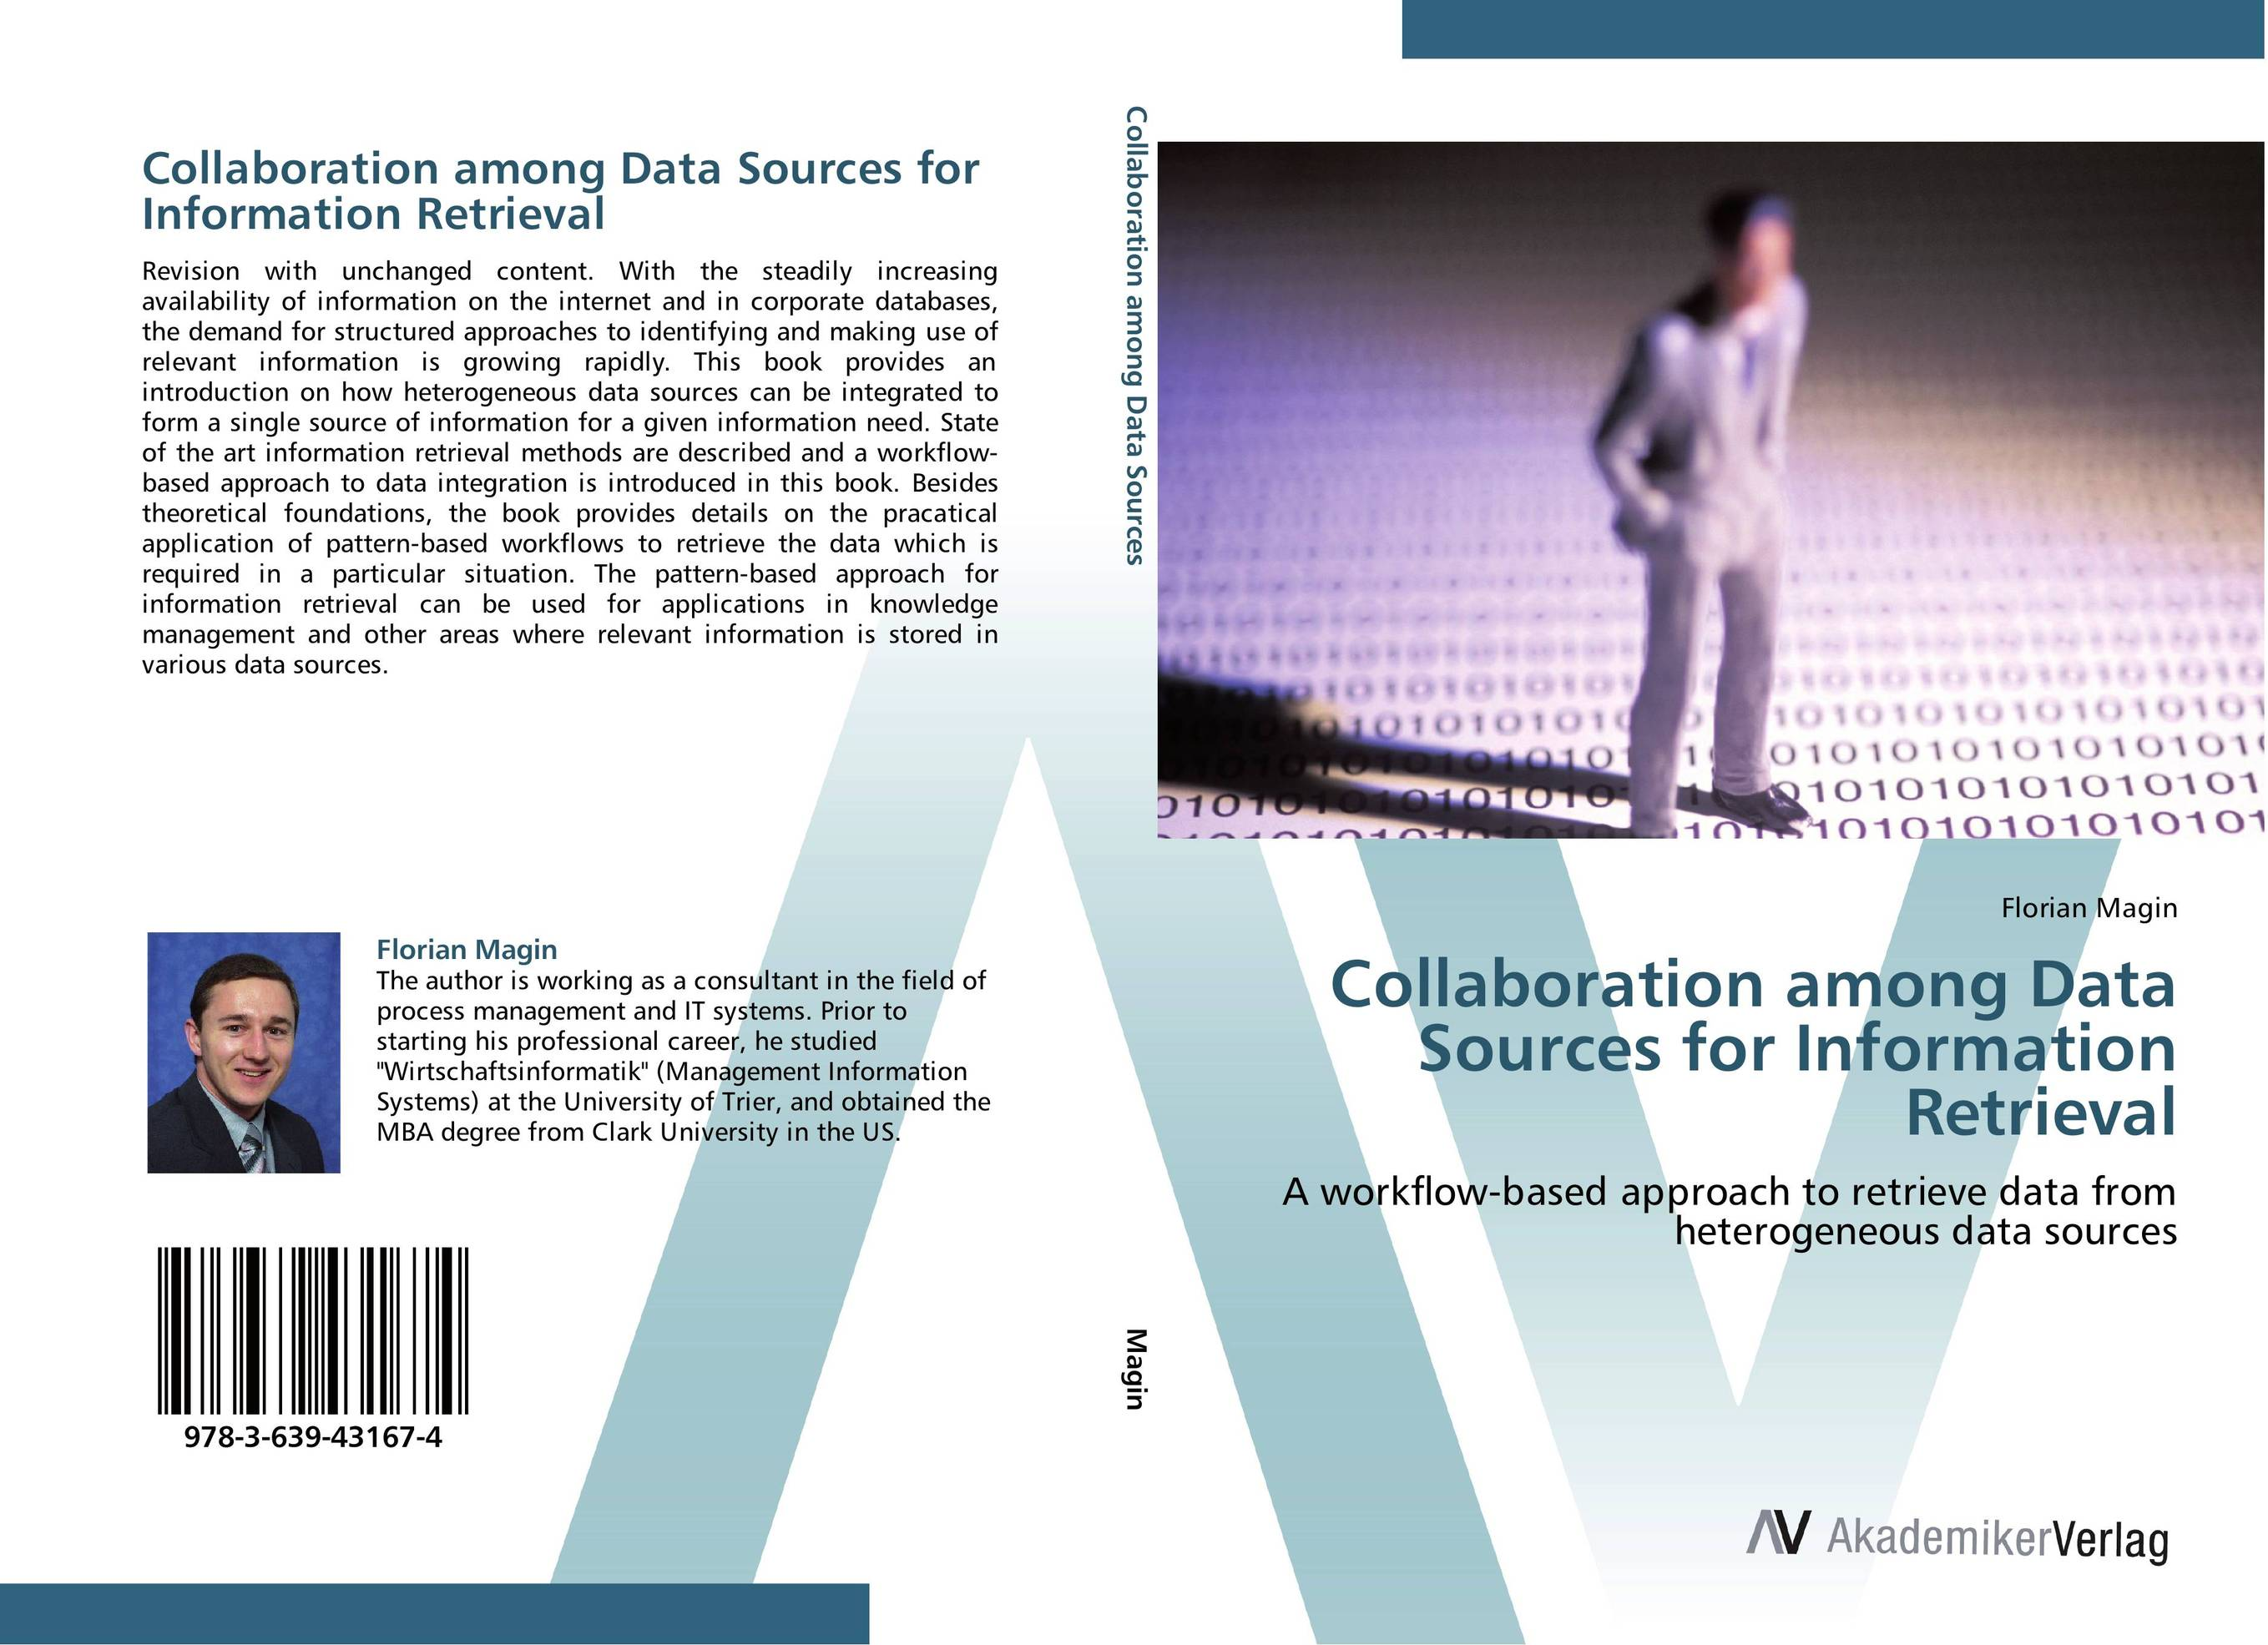 Collaboration among Data Sources for Information Retrieval robert hillard information driven business how to manage data and information for maximum advantage